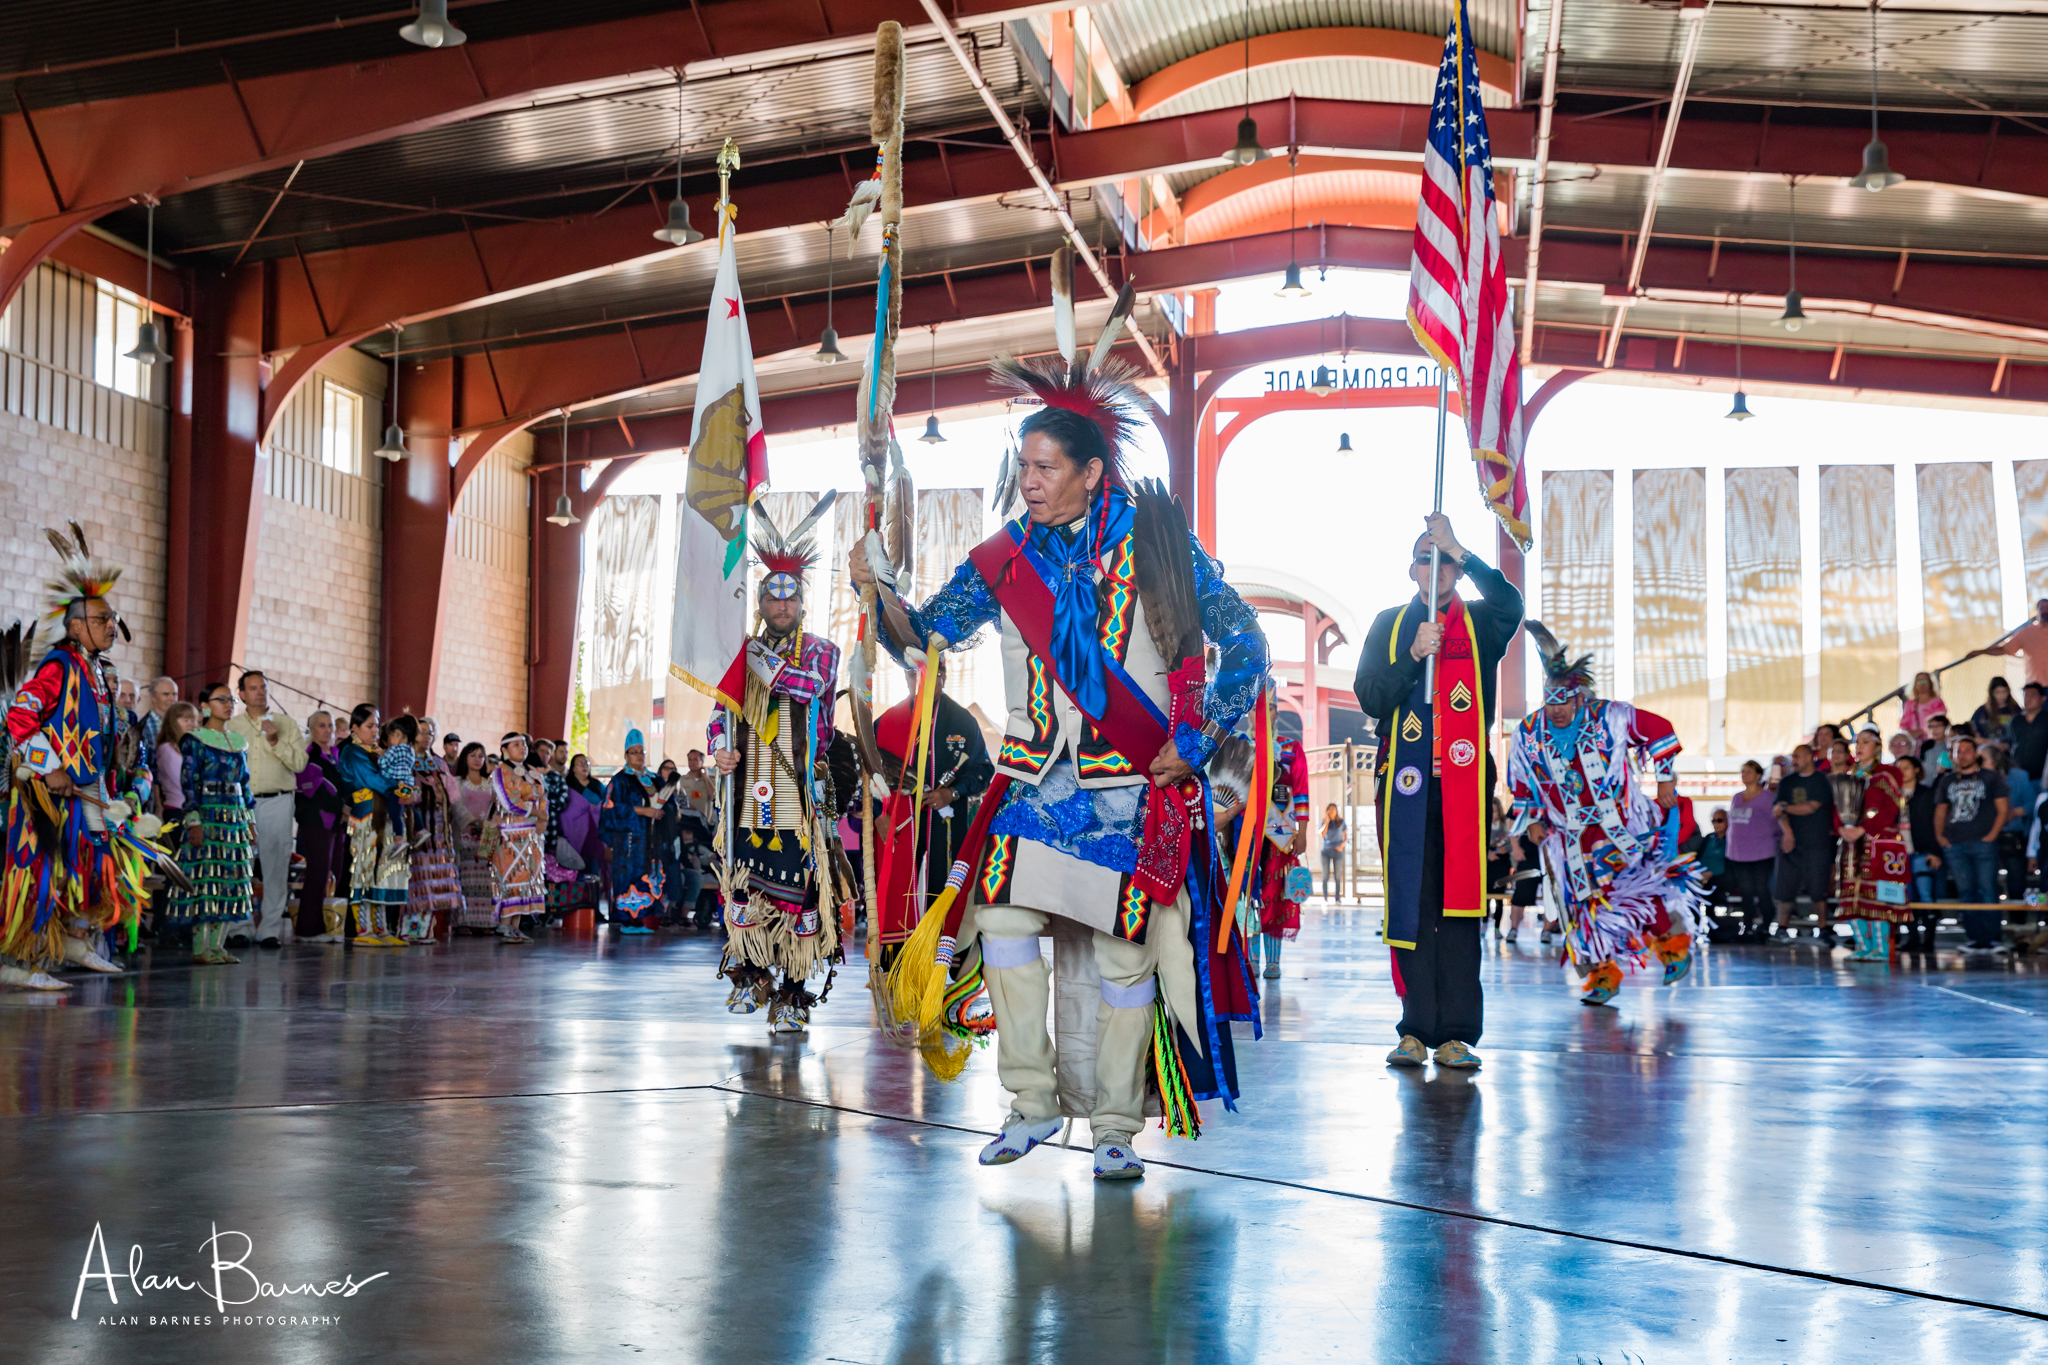 Pow-wow event. This was also a 'Veteran day' event as many Native Americans served in US Forces during WW1/2, Vietnam , Iraq etc.